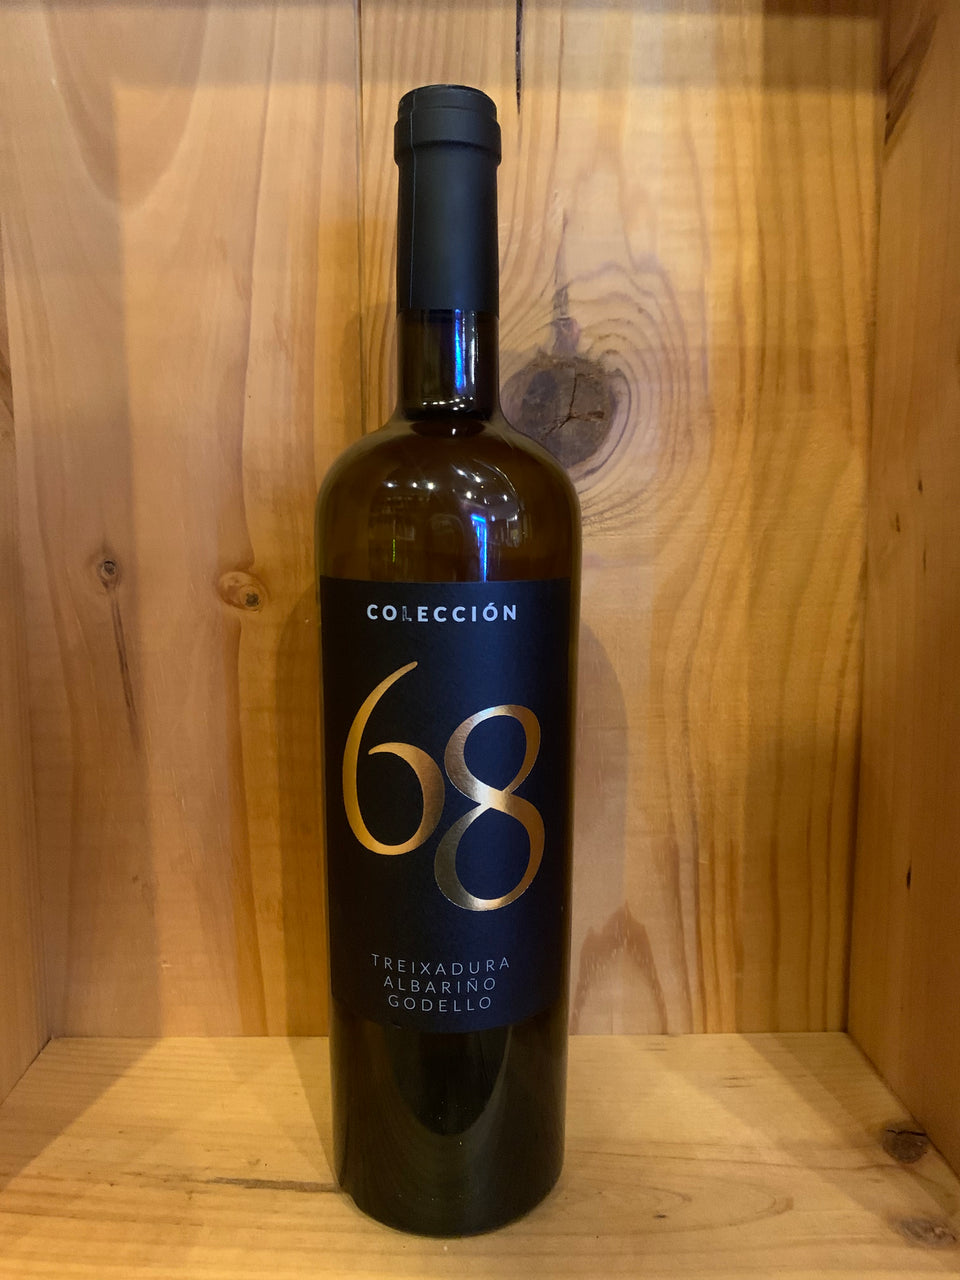 Vina Costeira Coleccion 68 2019 White Blend